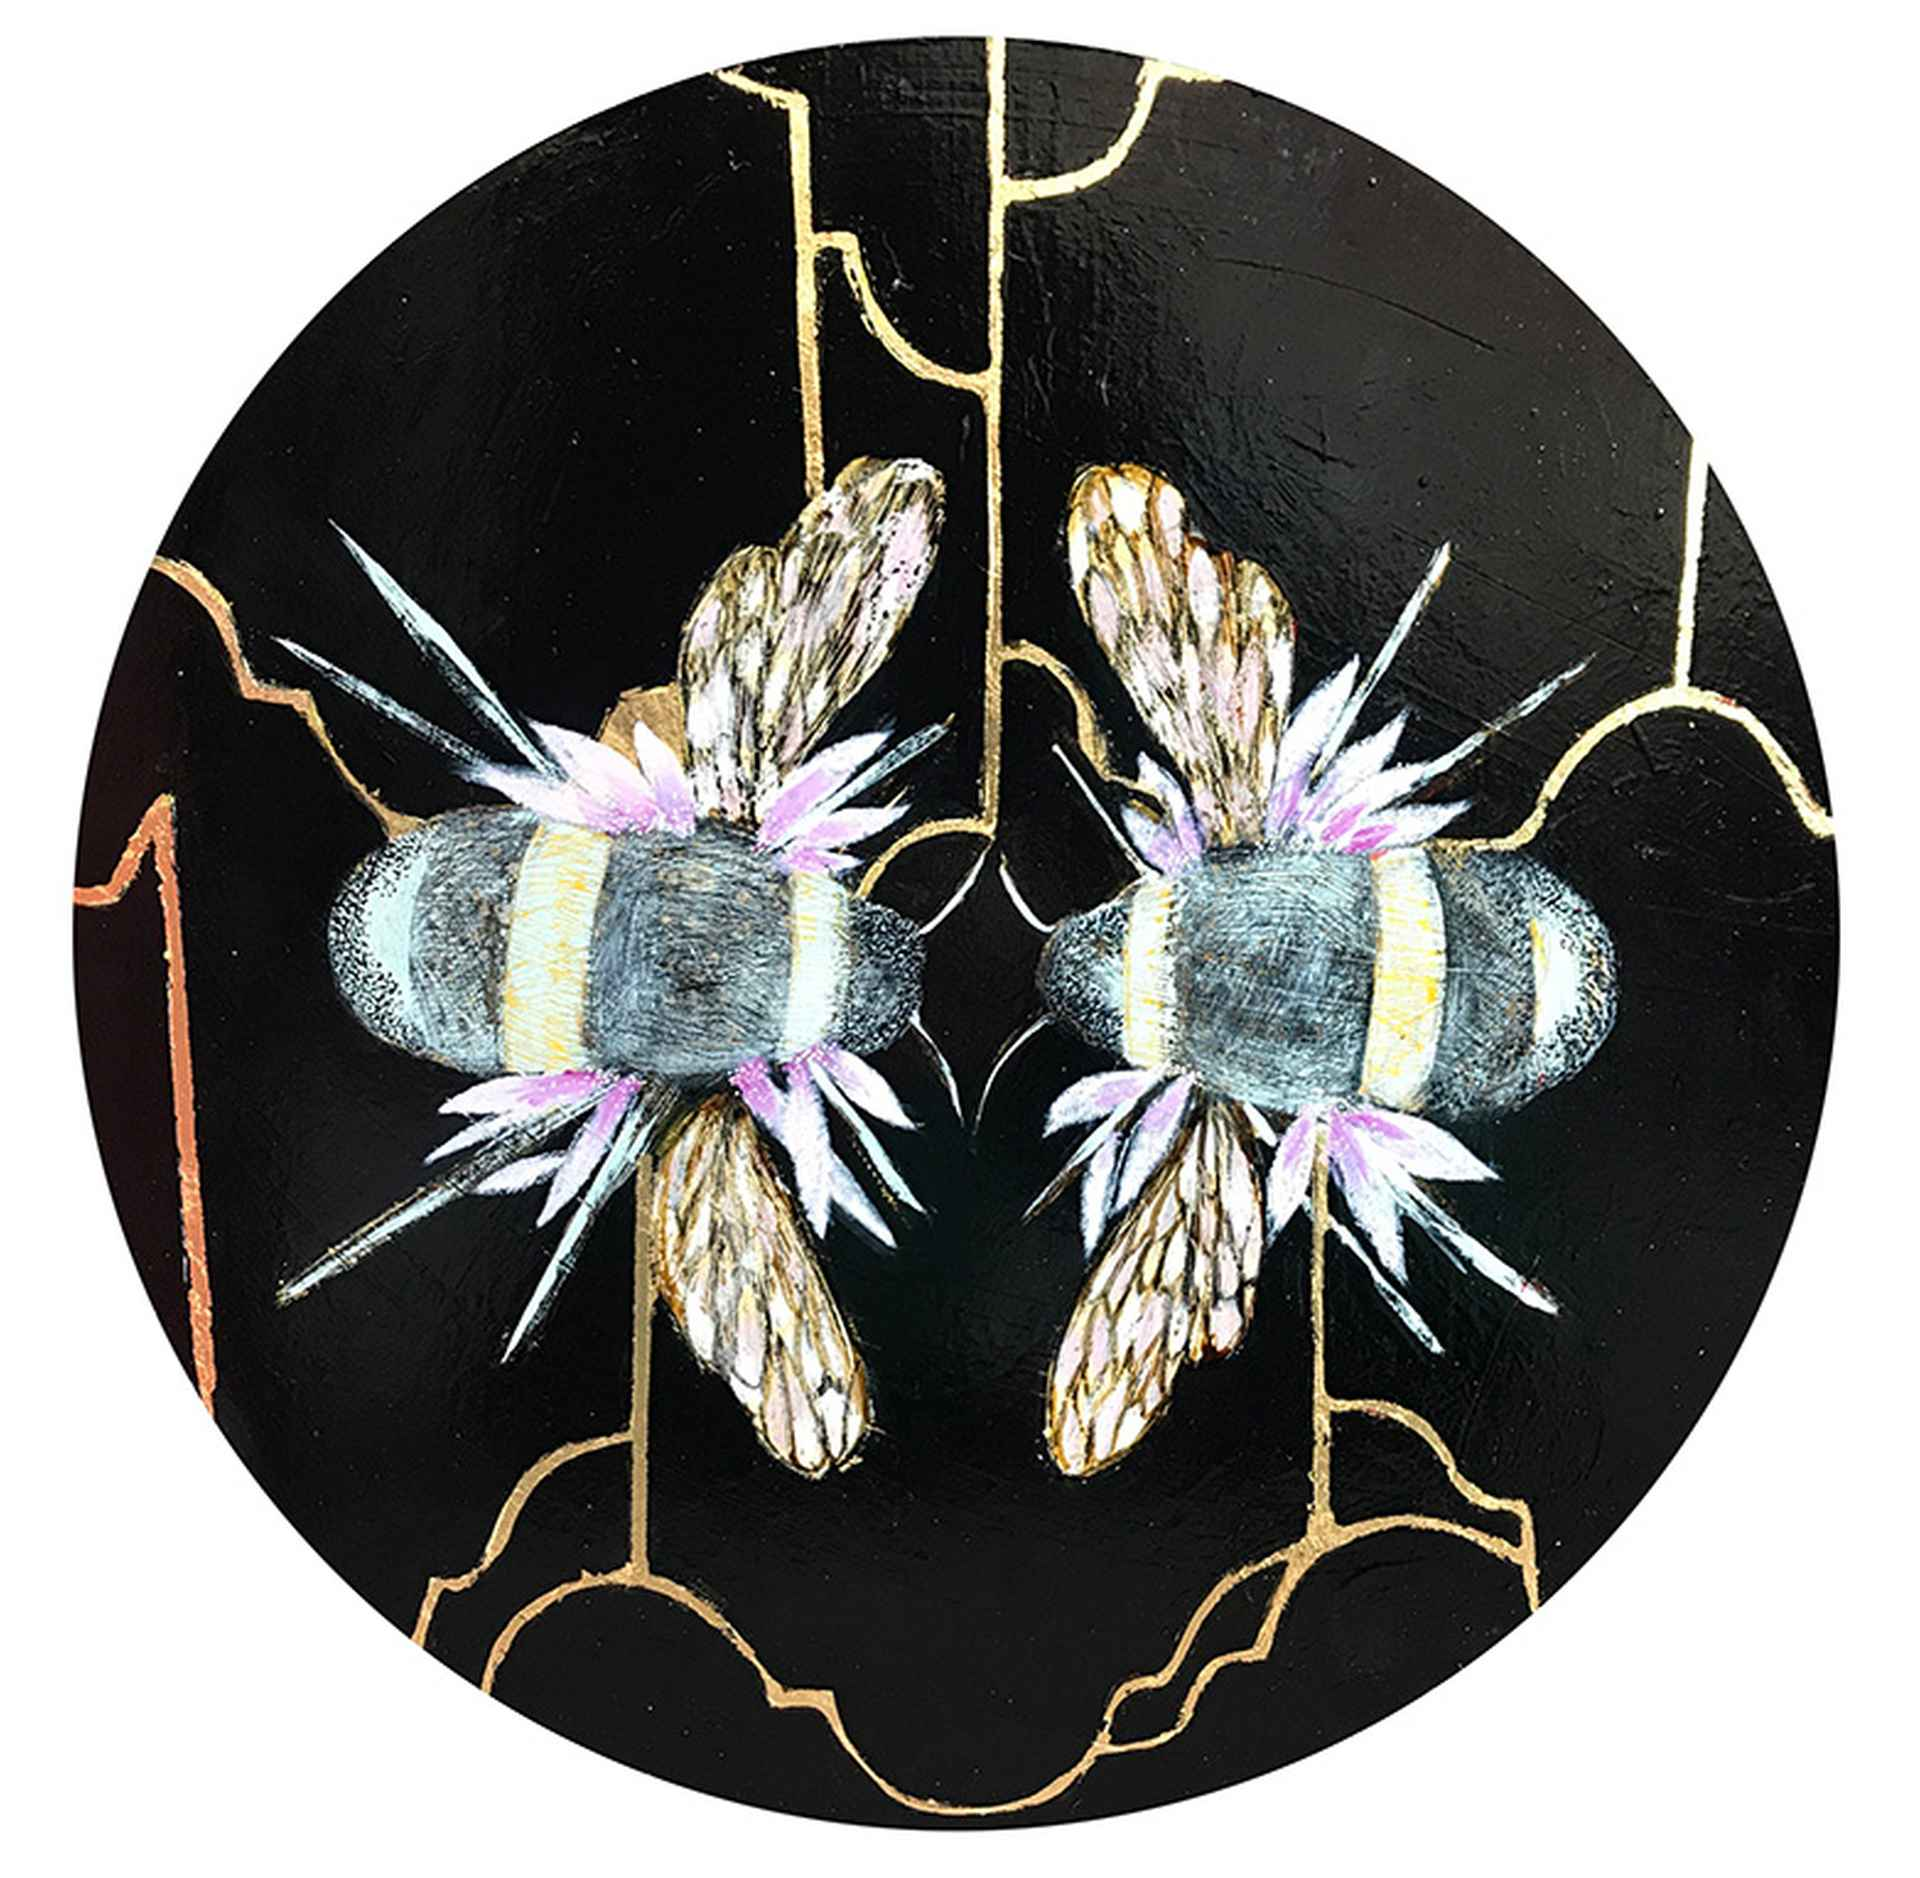 Insects 5 by Karenina Fabrizzi